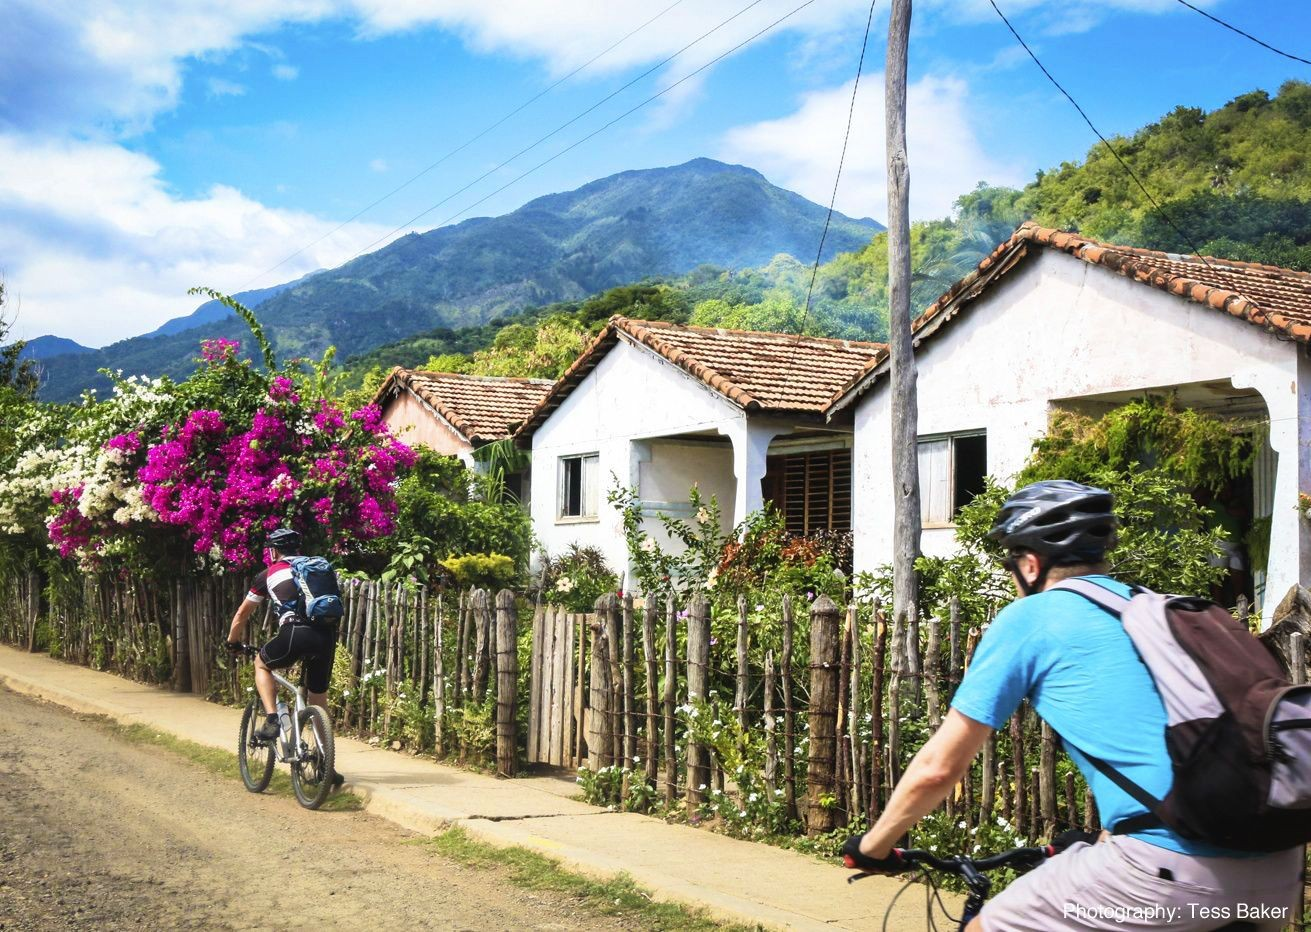 _Holiday.1.12464.jpg - Cuba - Cuban Revolutions - Cycling Adventures